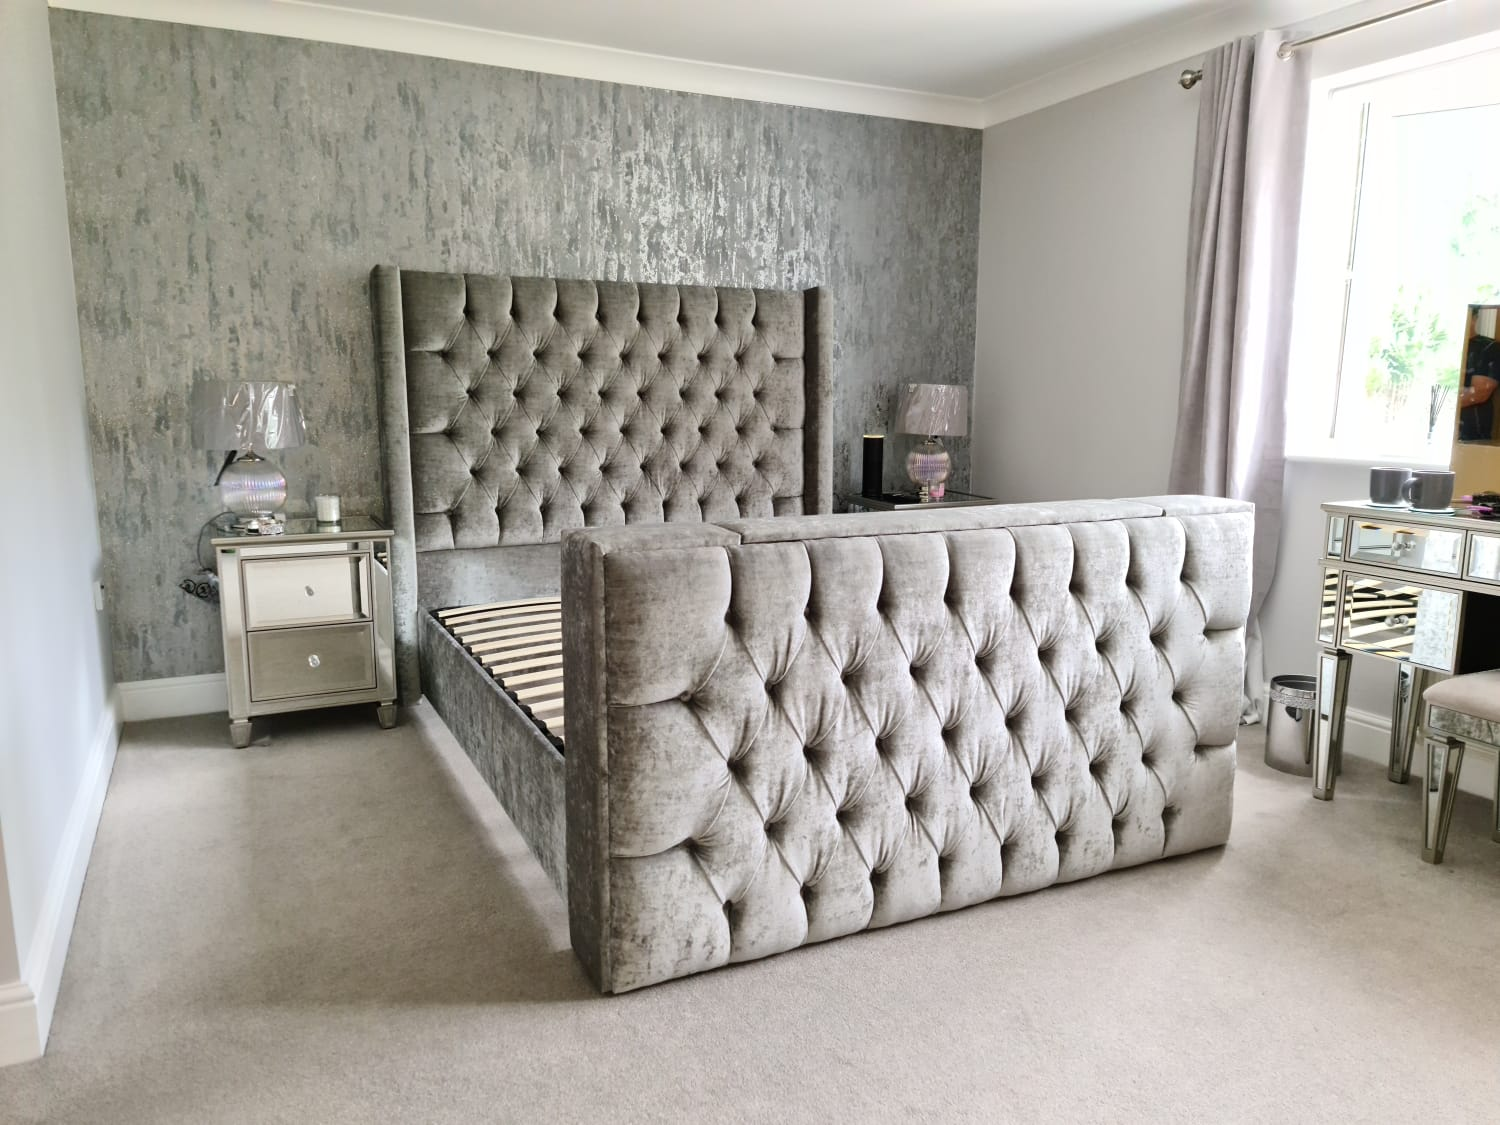 TV Bed - Eleanor shown in grey fabric with diamantes